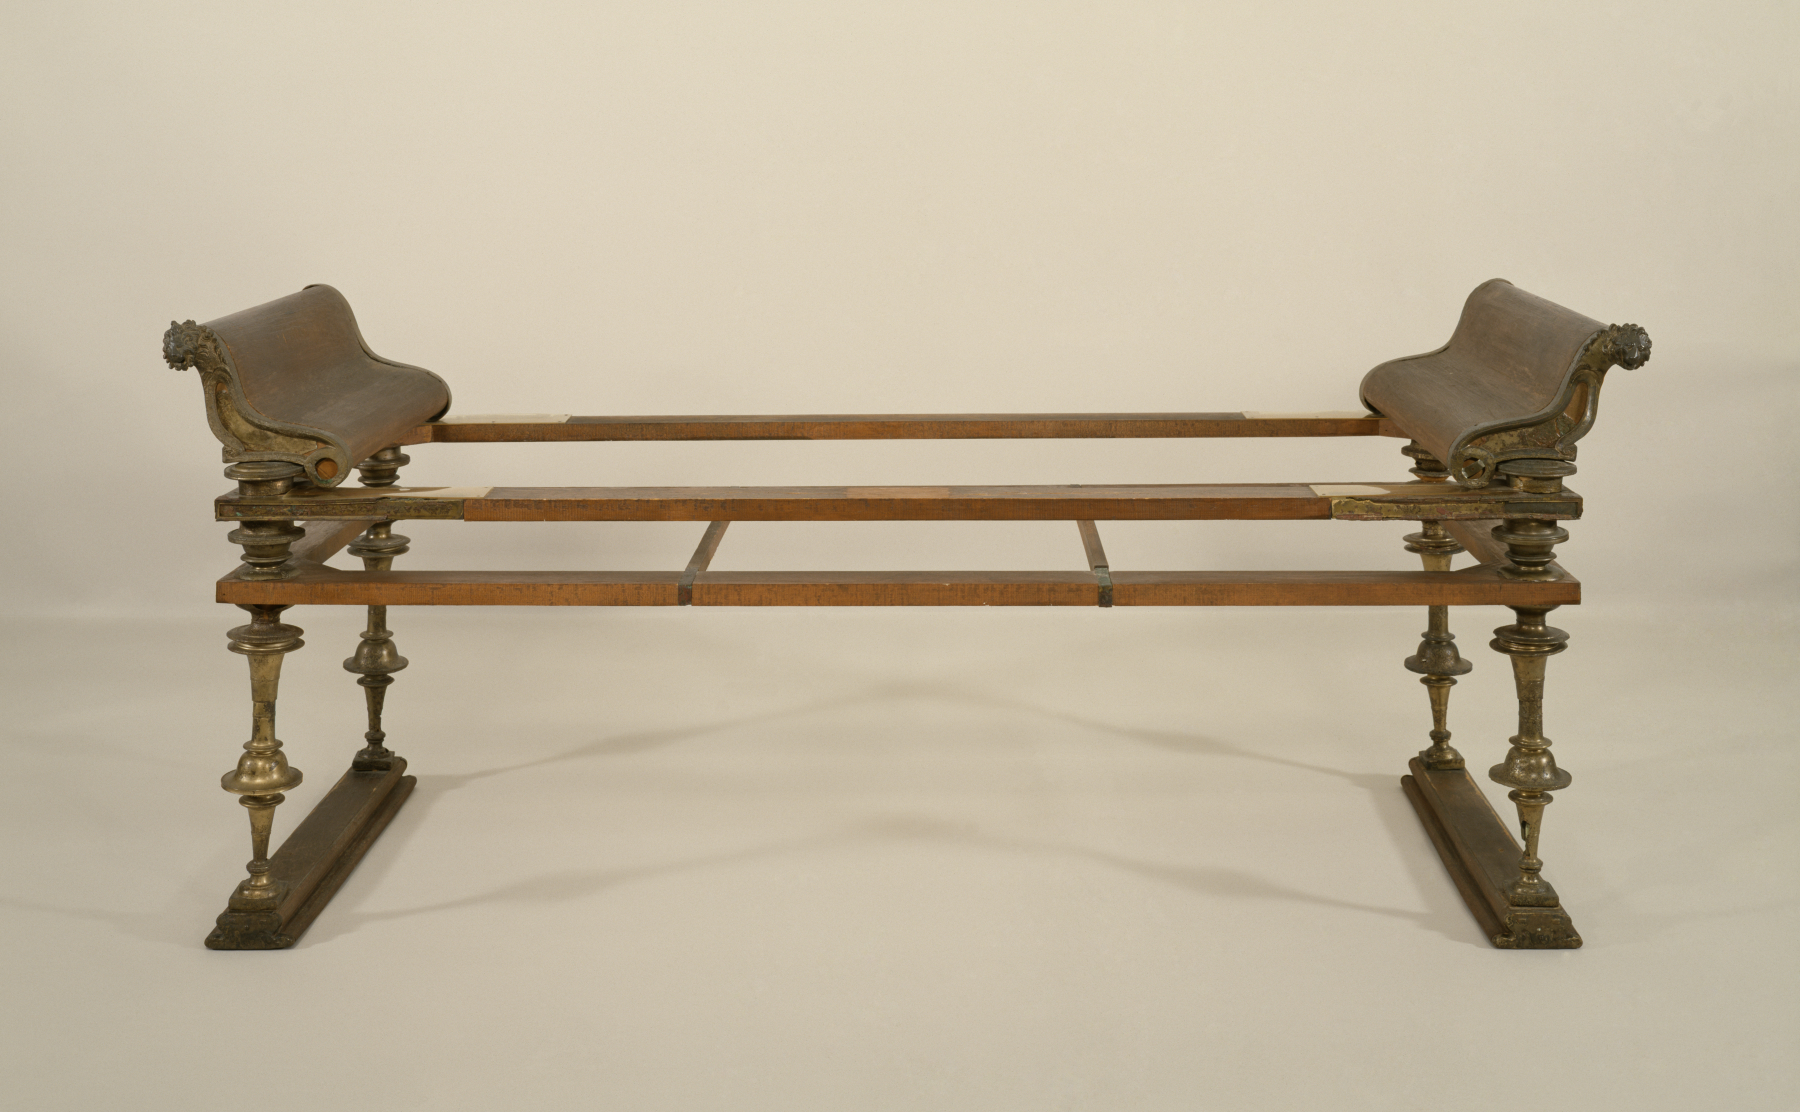 Roman dining couch or klinē, in metal and reconstructed wood with couch heads (referred to as Fulcra).